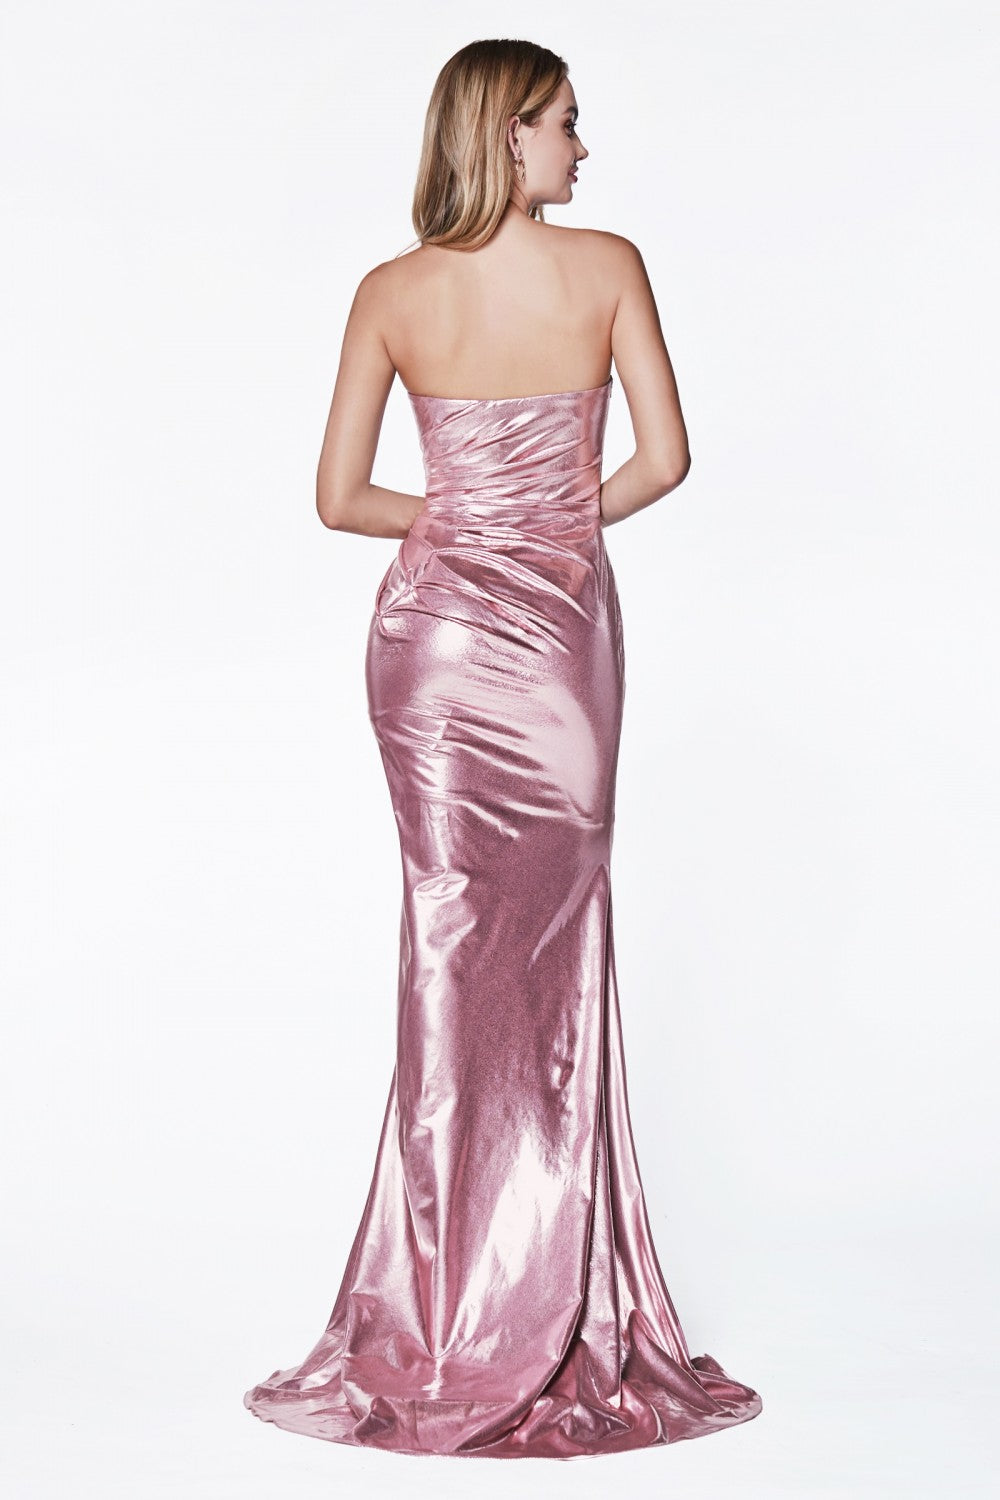 Strapless Fitted Gown With Sweetheart Neckline And Leg Slit